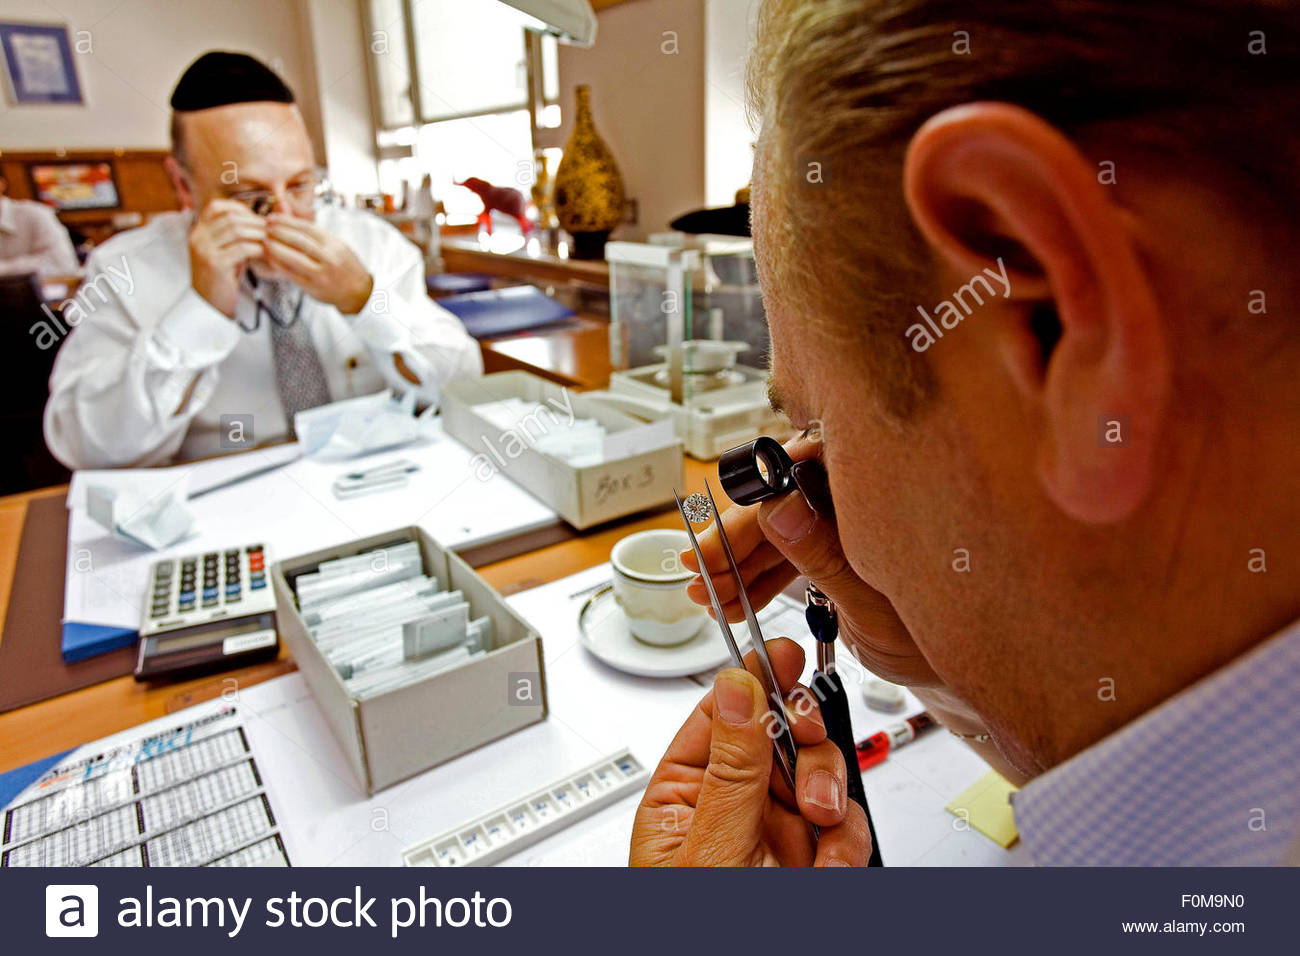 Antwerp, Buying diamonds, The Diamond merchants are selecting the production, The Eurostar Diamond Trader is owned - Stock Image